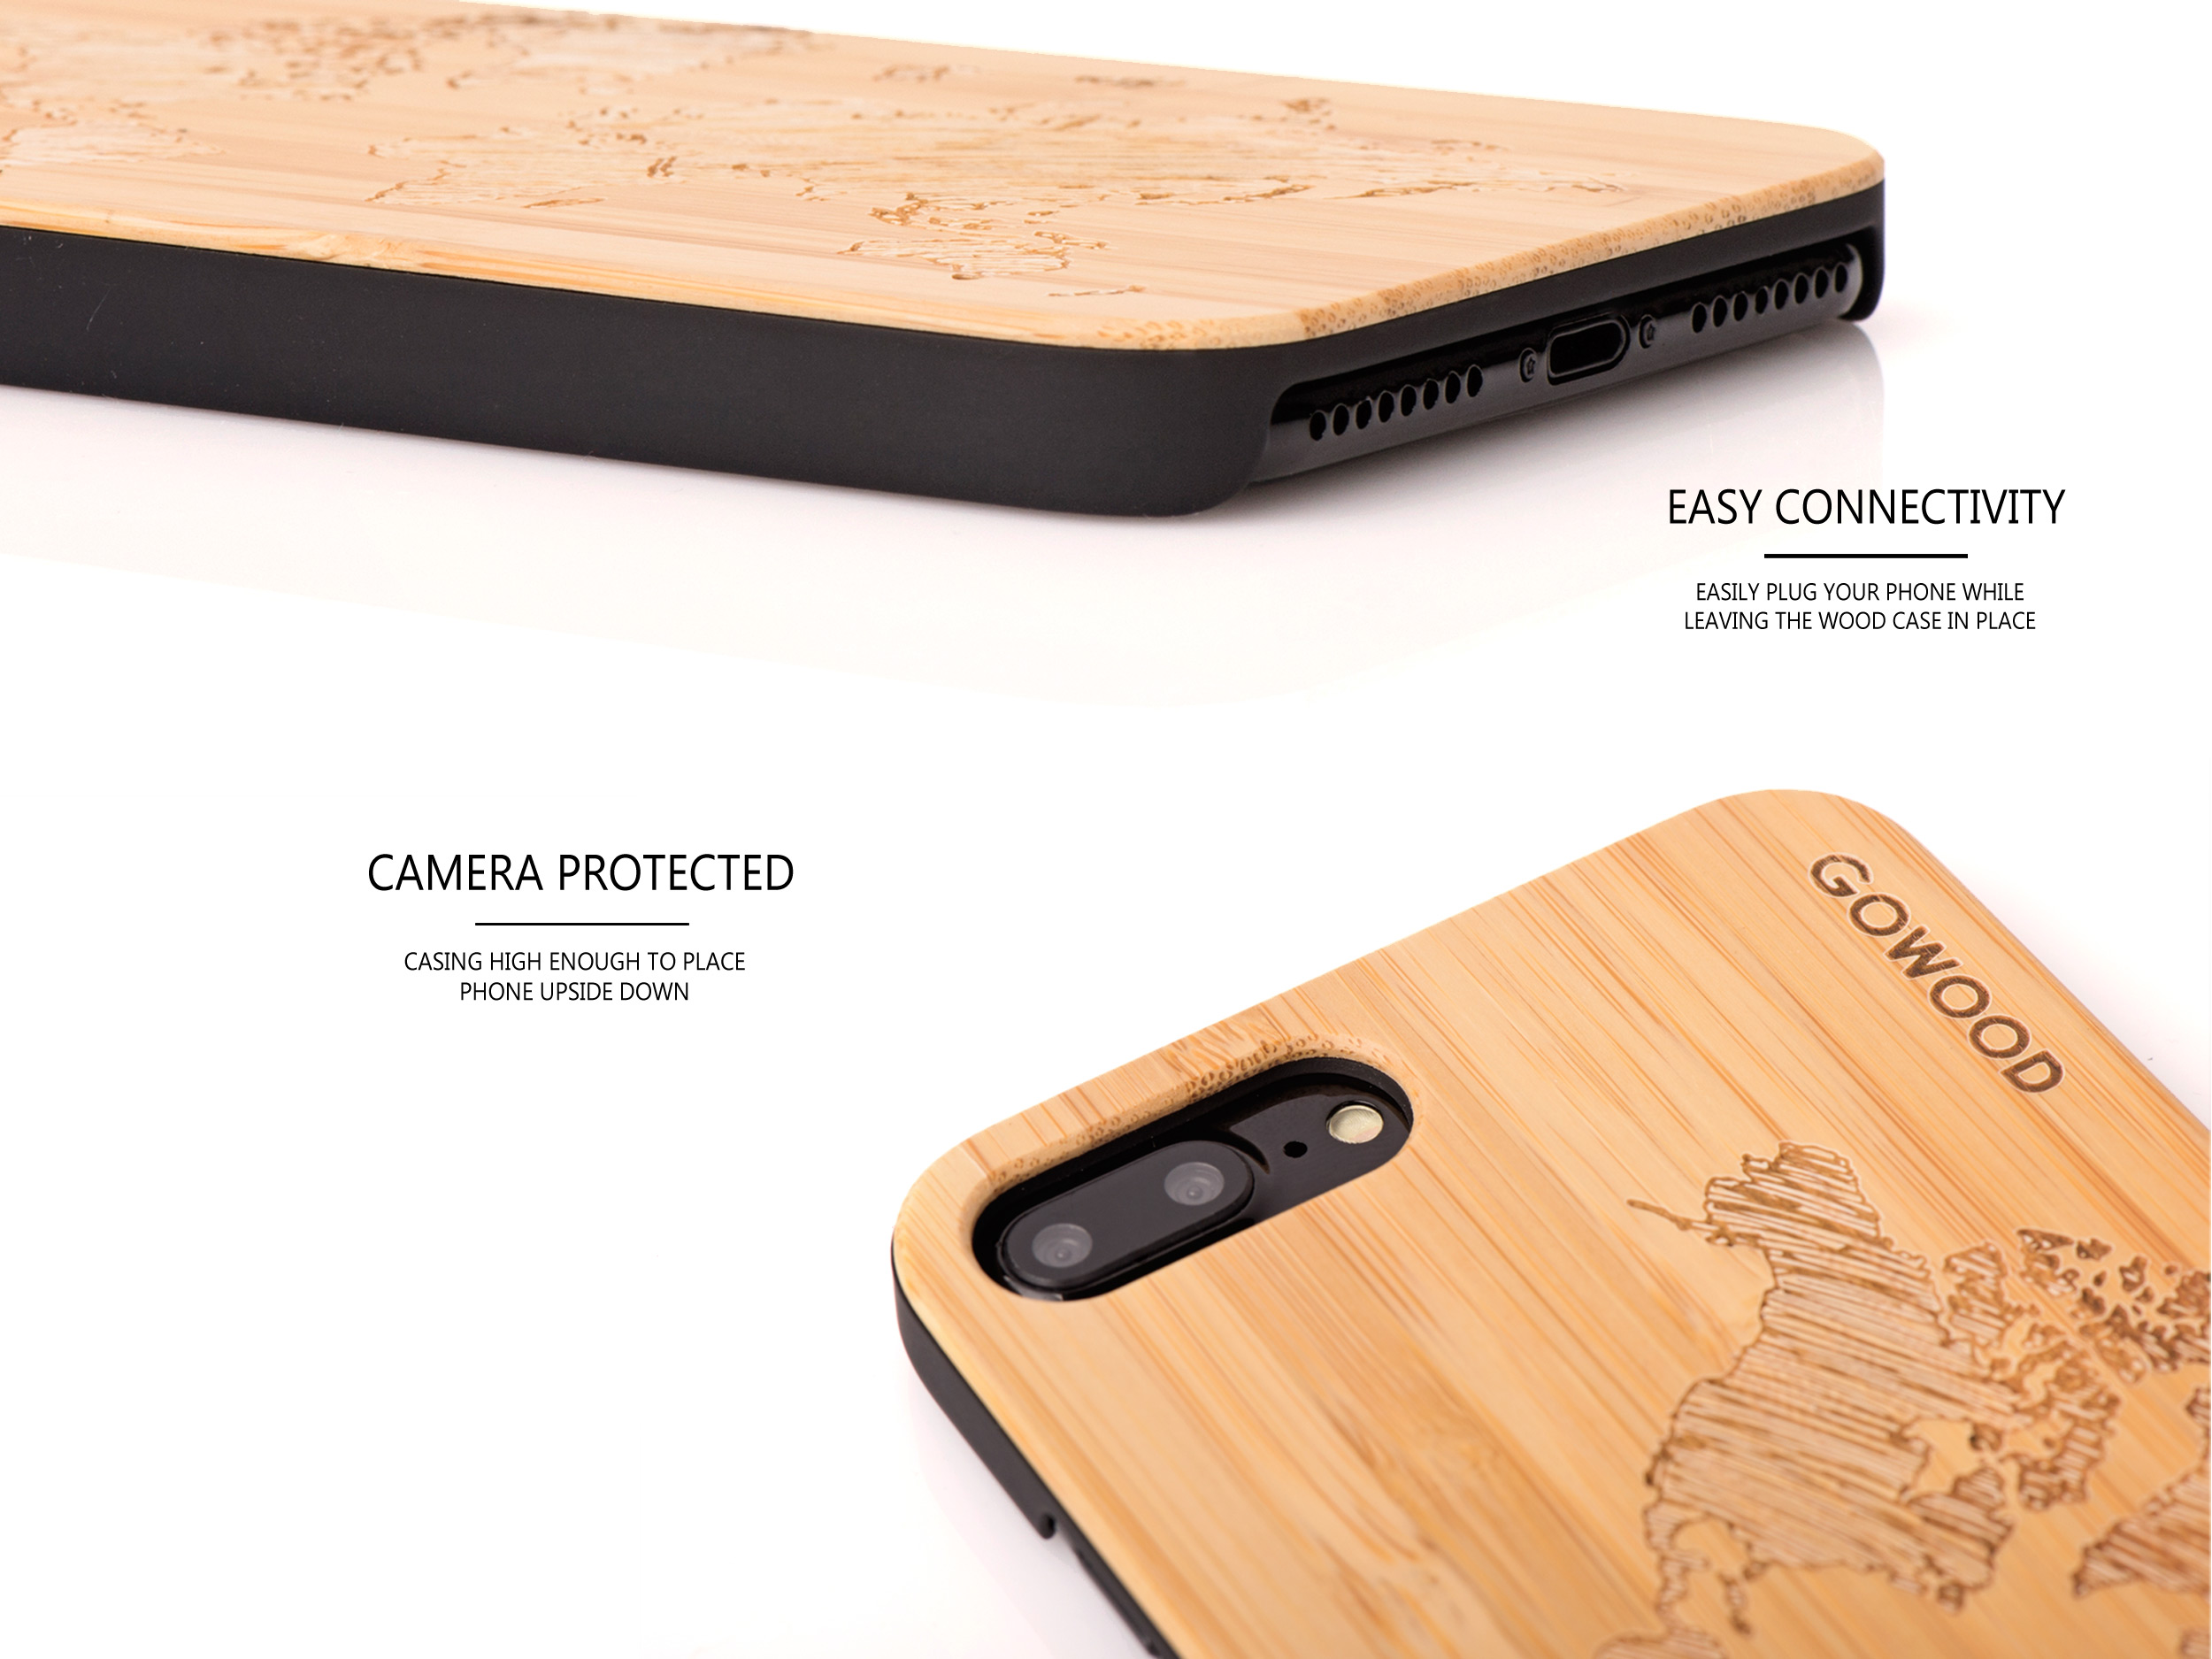 iPhone 7 Plus and 8 Plus wood case map - camera